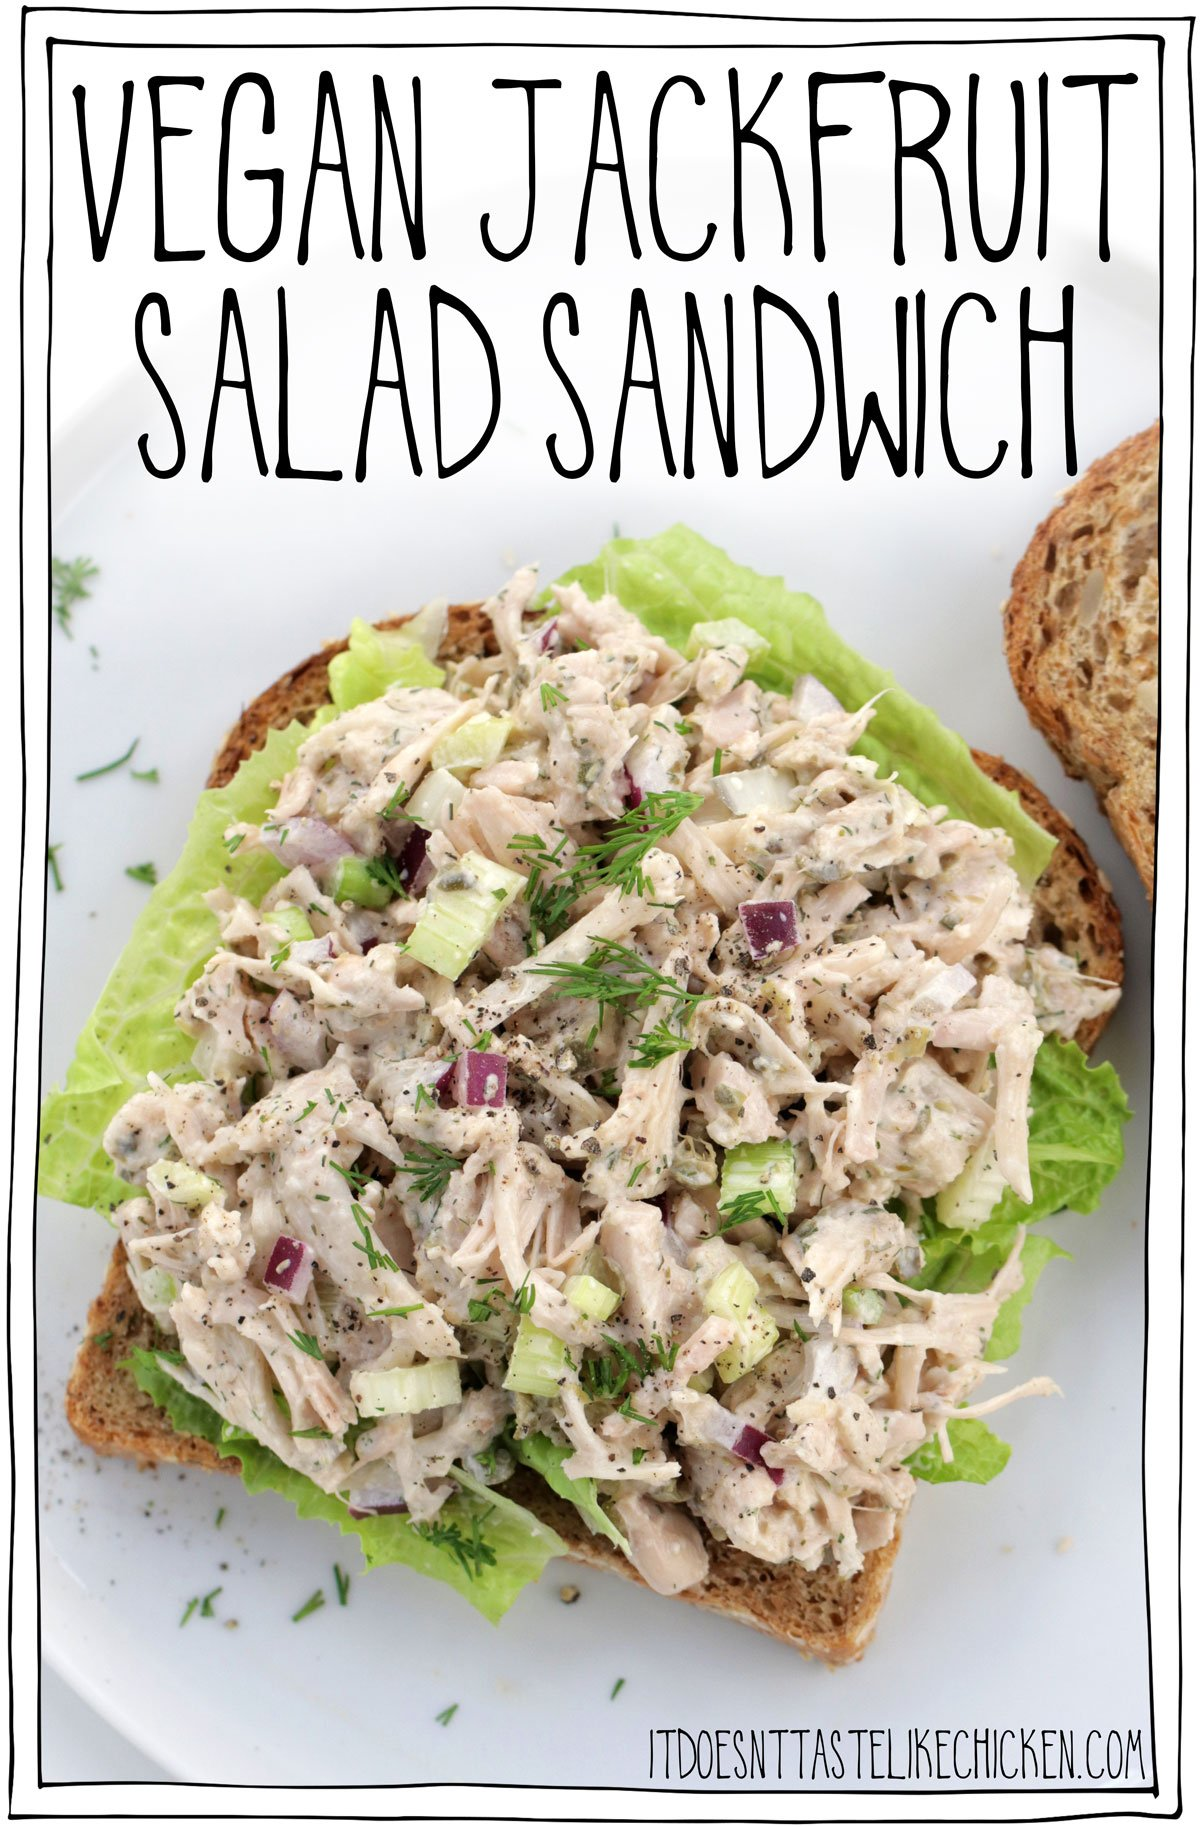 Vegan Jackfruit Salad Sandwich! Just 10 ingredients and 10 minutes to make. Jackfruit is the perfect vegan sub for tuna or chicken. And best yet this tastes even better made ahead of time, making it perfect for meal prep. #itdoesnttastelikechicken #veganrecipes